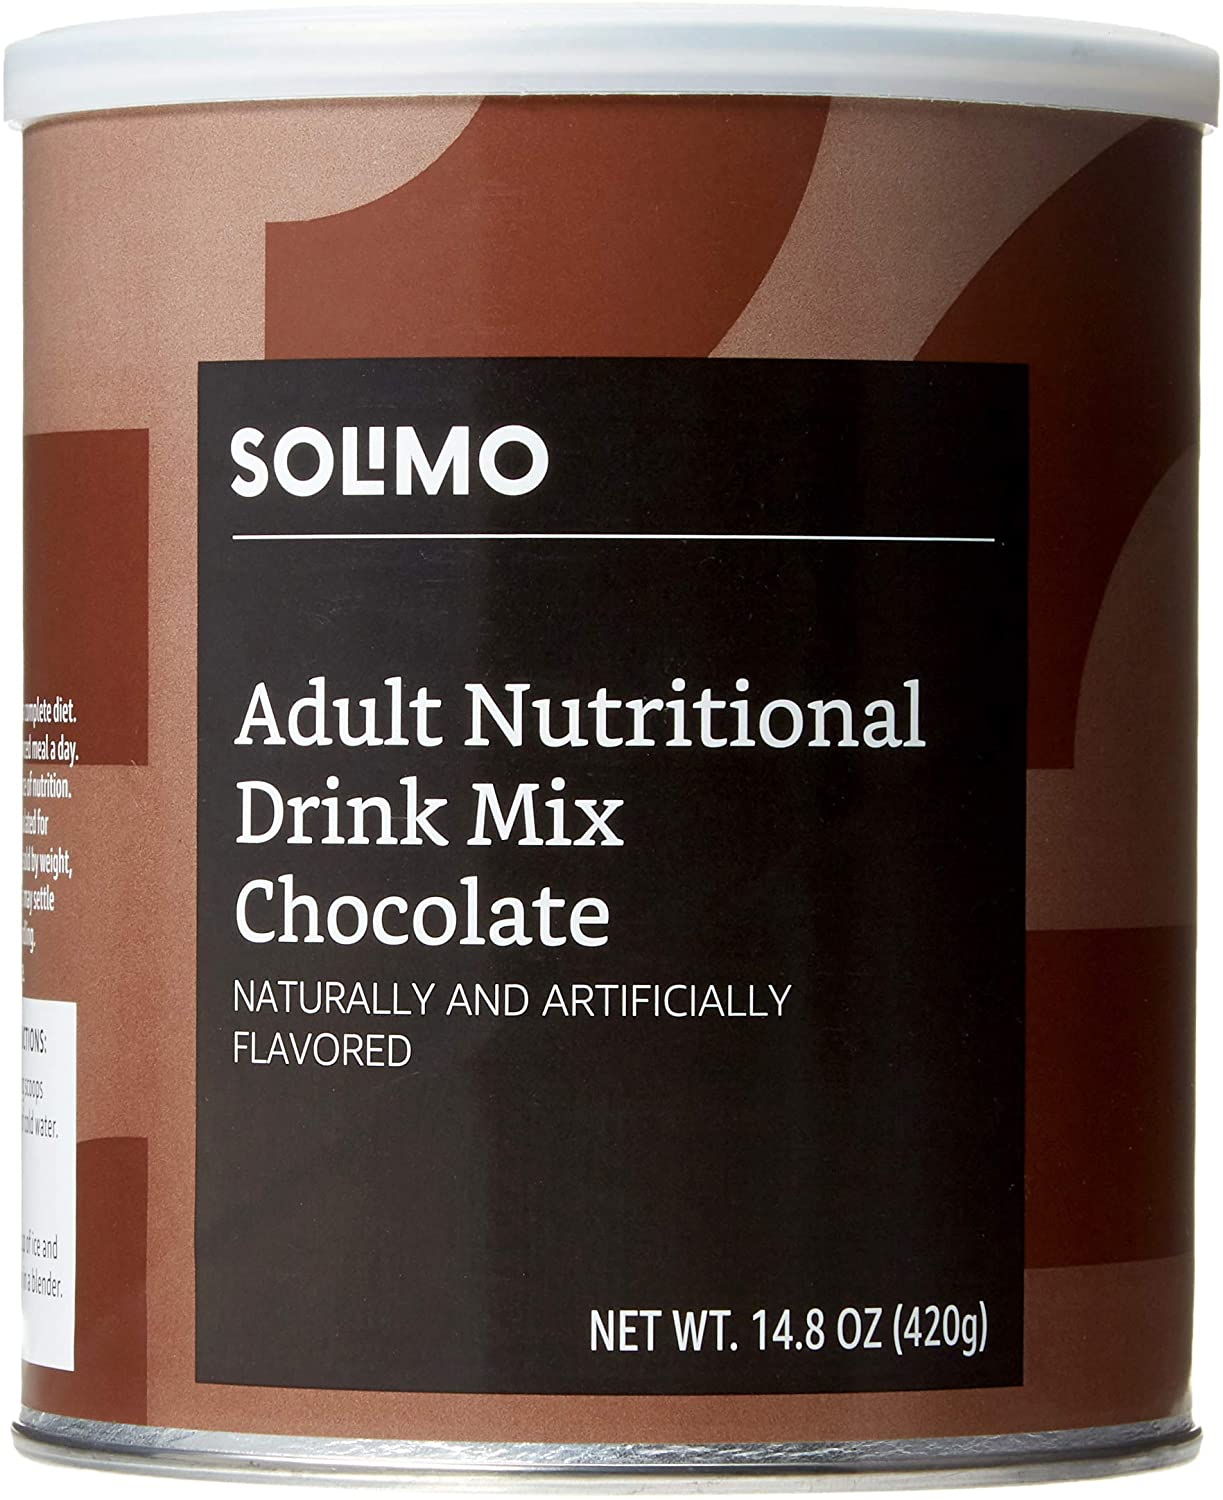 DHgate Brand - Solimo Adult Nutritional Drink Mix Powder, Meal Replacement, Chocolate Flavor, 14.8 Ounce, 7 Servings